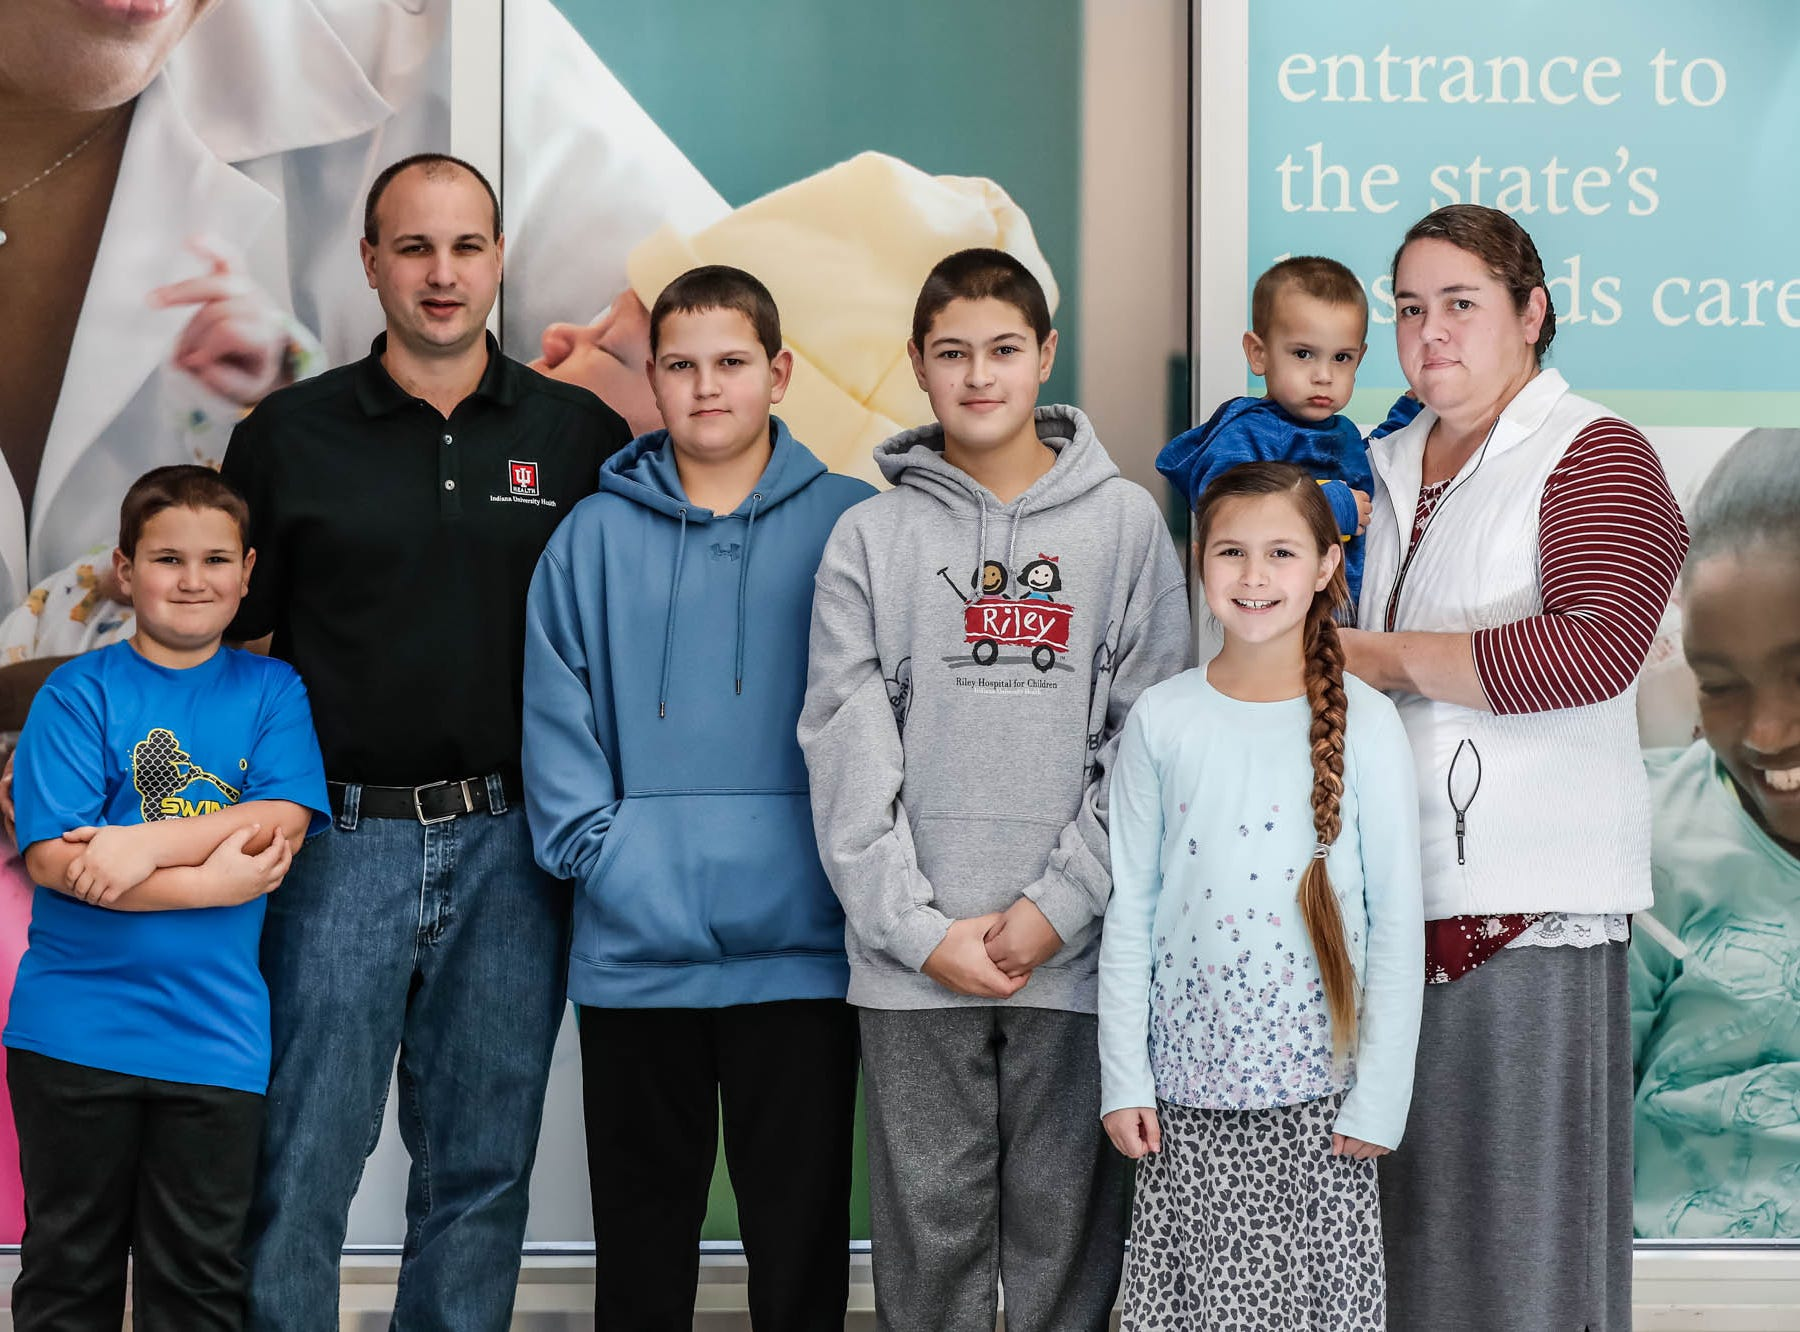 The Helmuth family poses for a photo at Riley Hospital for Children on Jan. 13. From left: Gabriel, Myron, Chandler, Britton, Madalyn, Zayne and Laura.